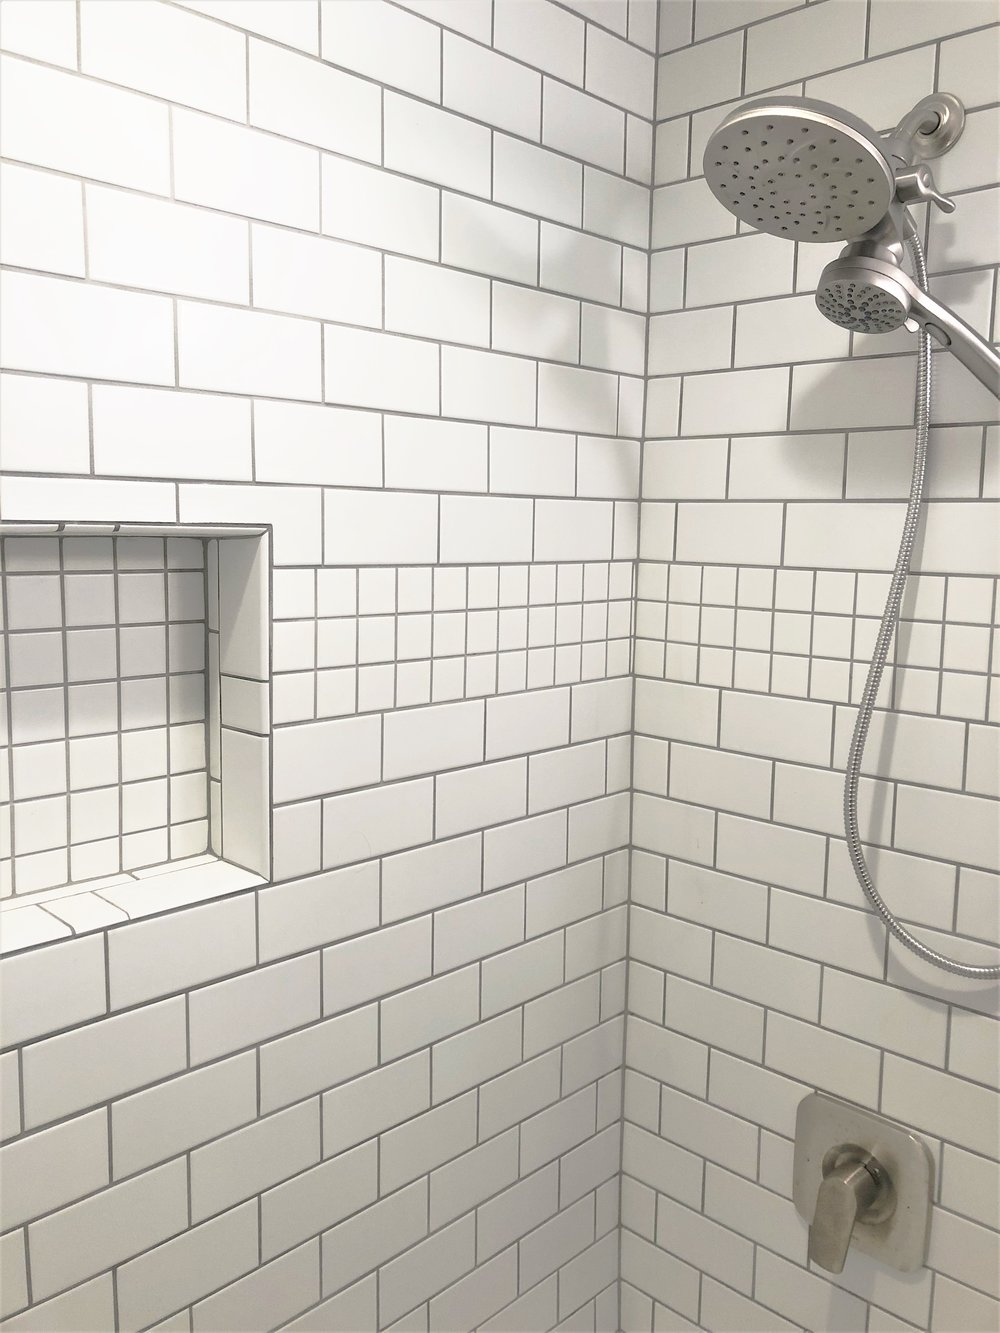 Shower and shower head clsoe up - edited.jpg